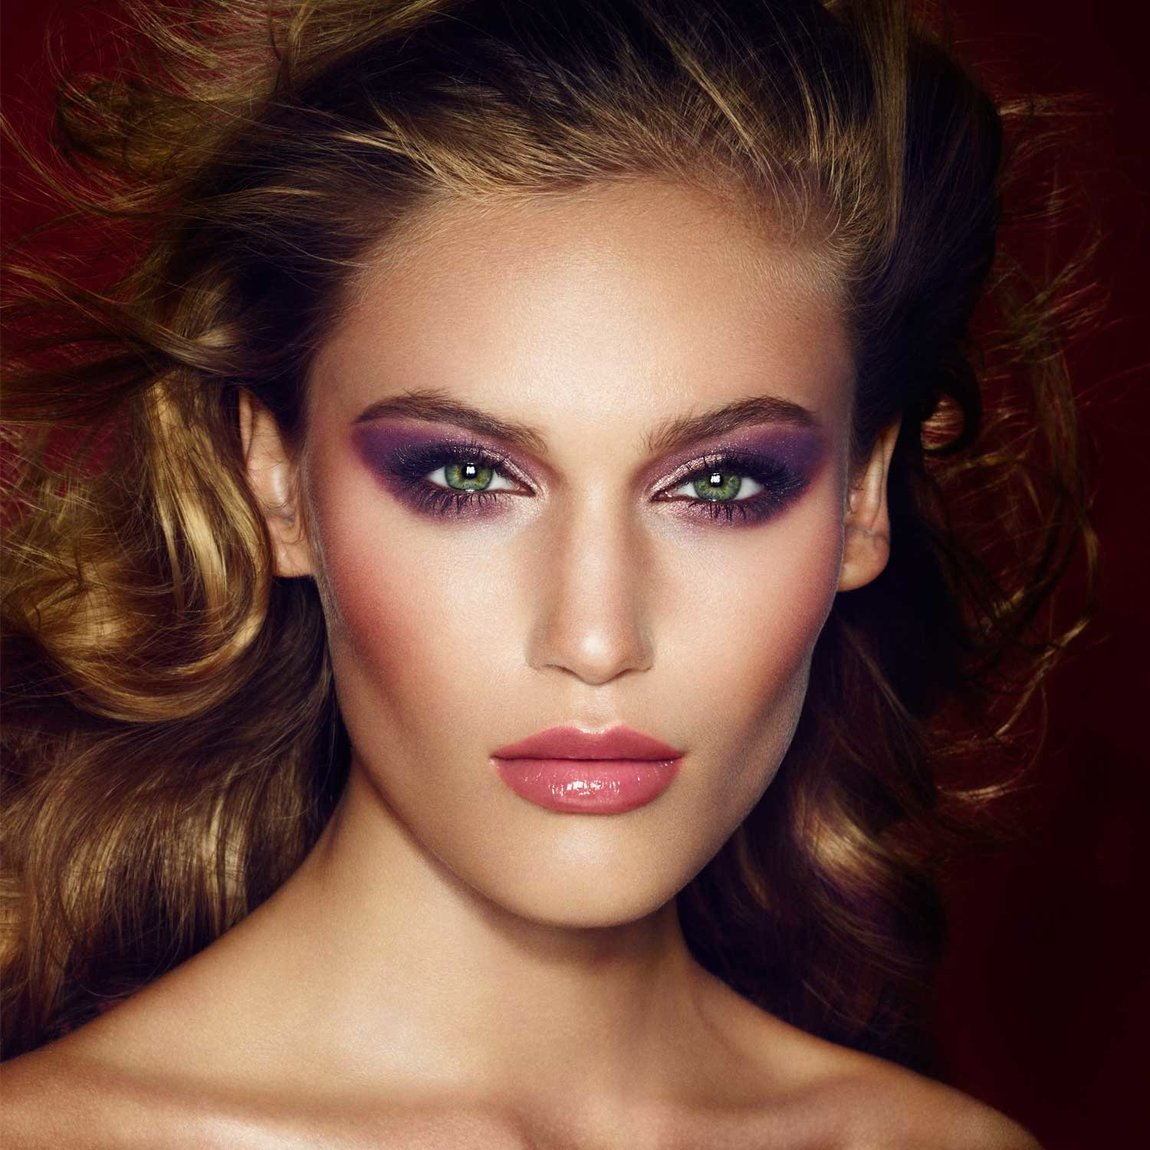 Charlotte Tilbury Get the Look The Glamour Muse product swatch.